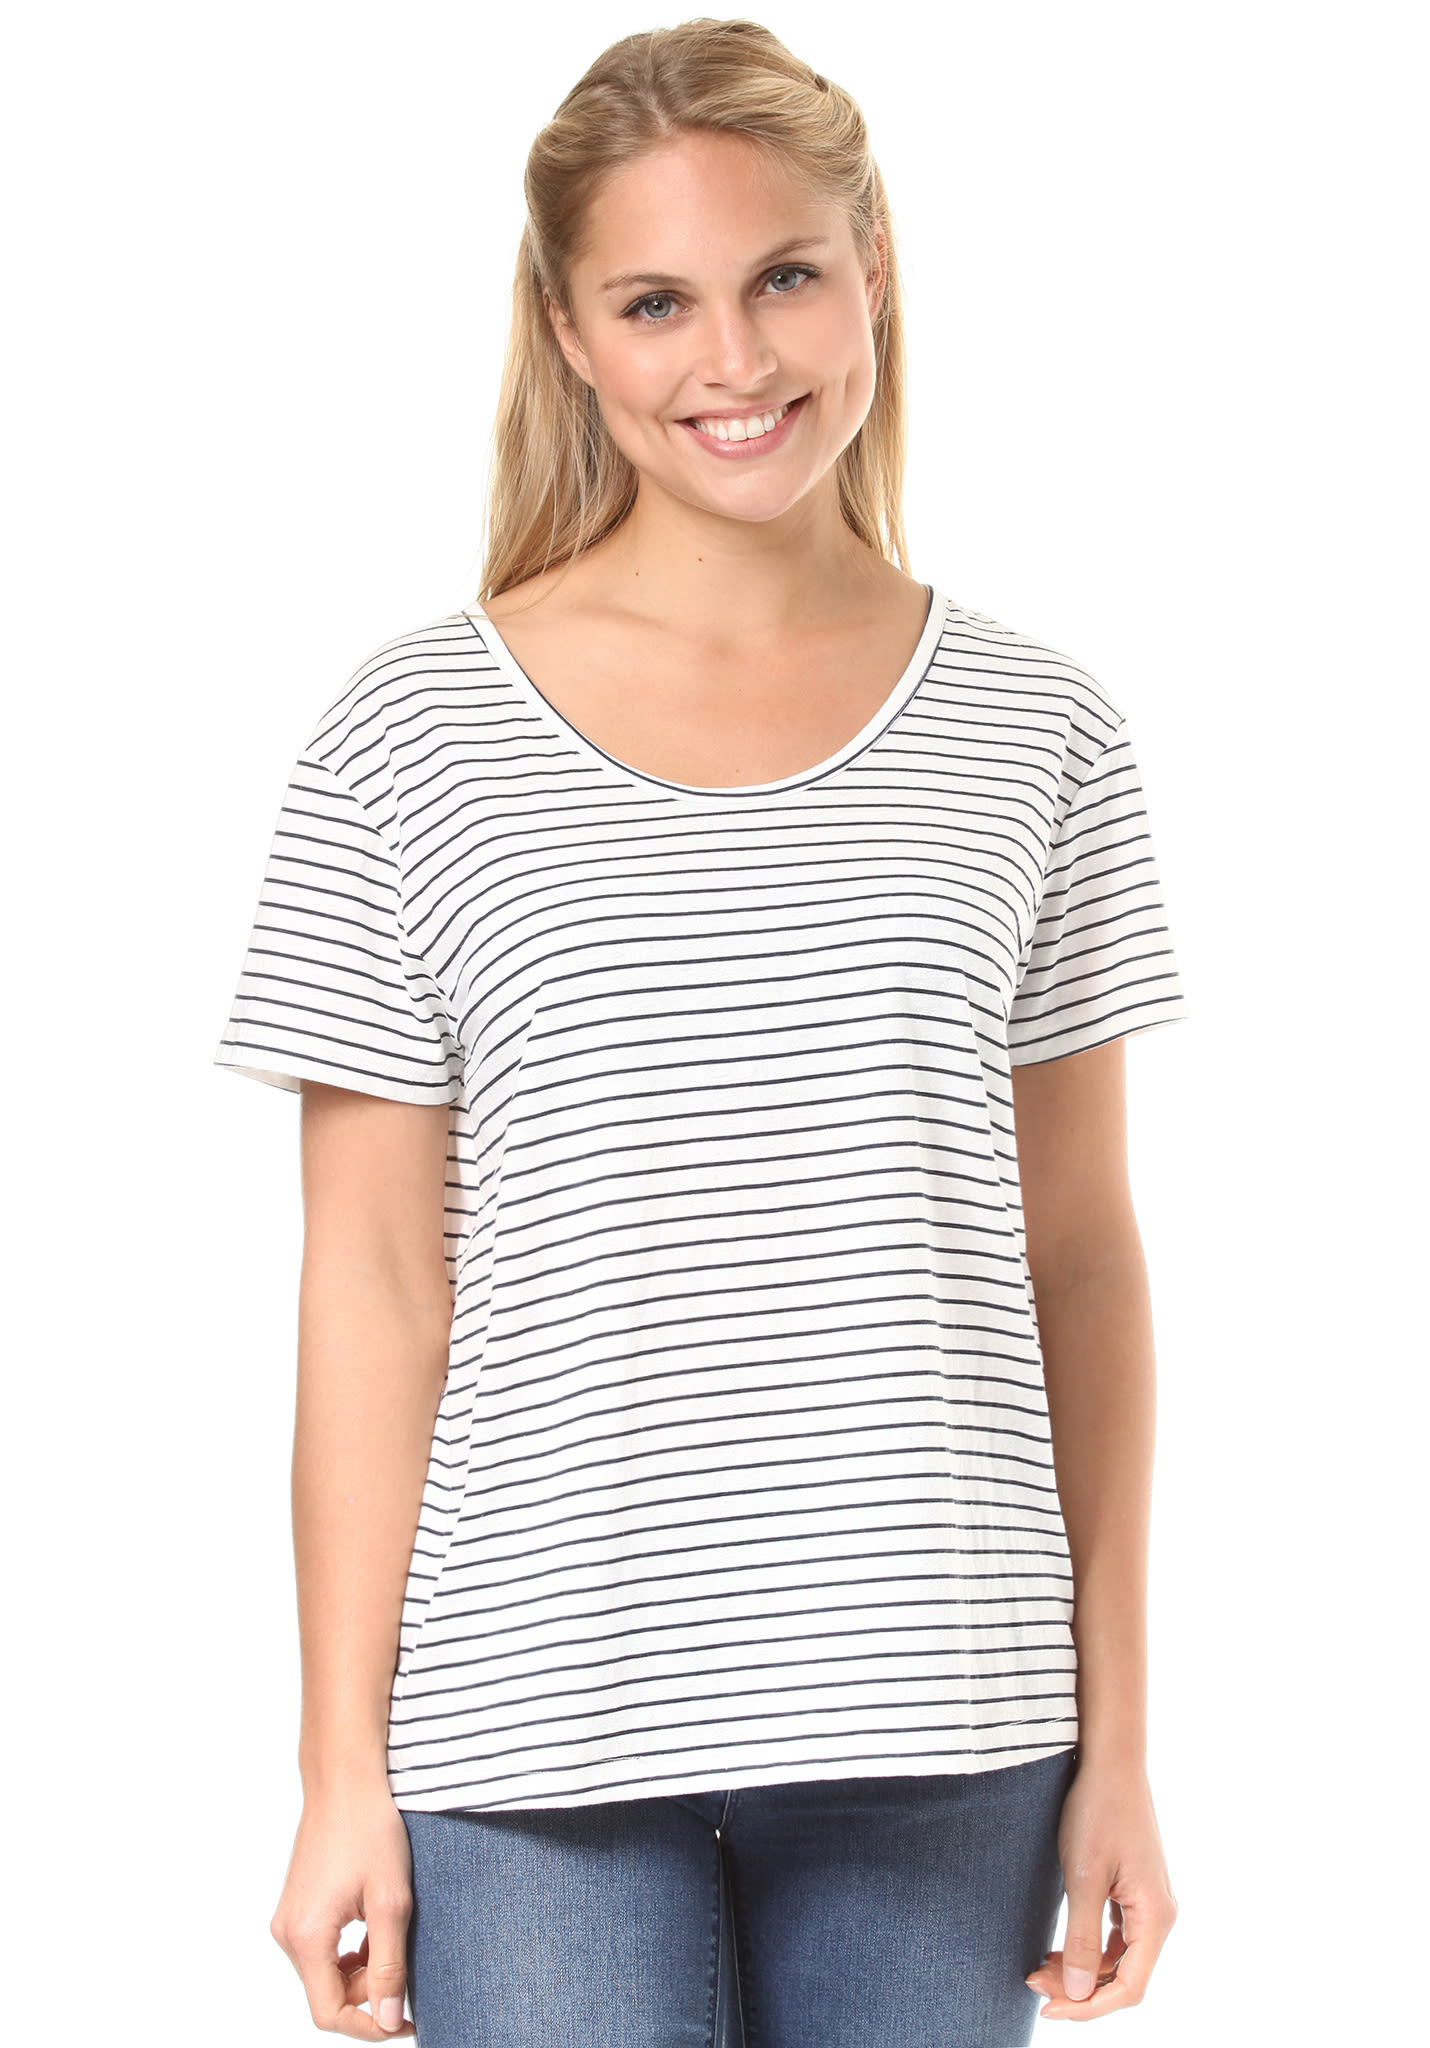 79bcd86ab0f26b Roxy Just Simple Stripes - T-Shirt for Women - Blue - Planet Sports